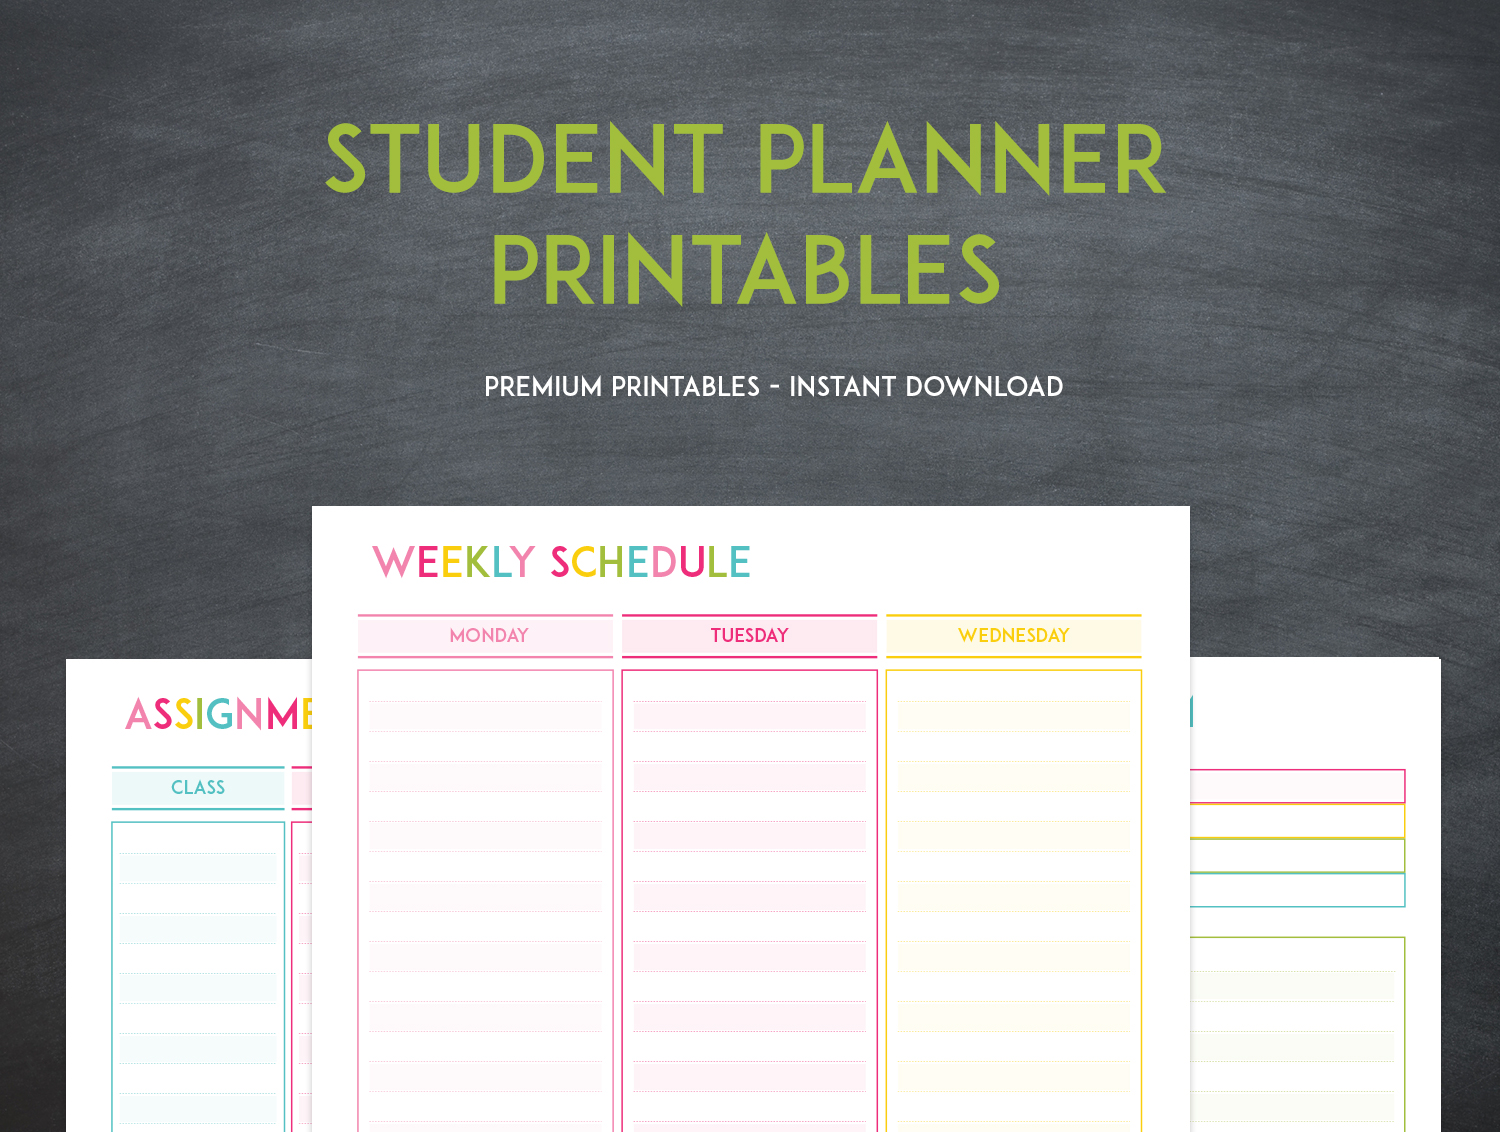 photograph about Printable Student Planner Download named scholar planner printables -